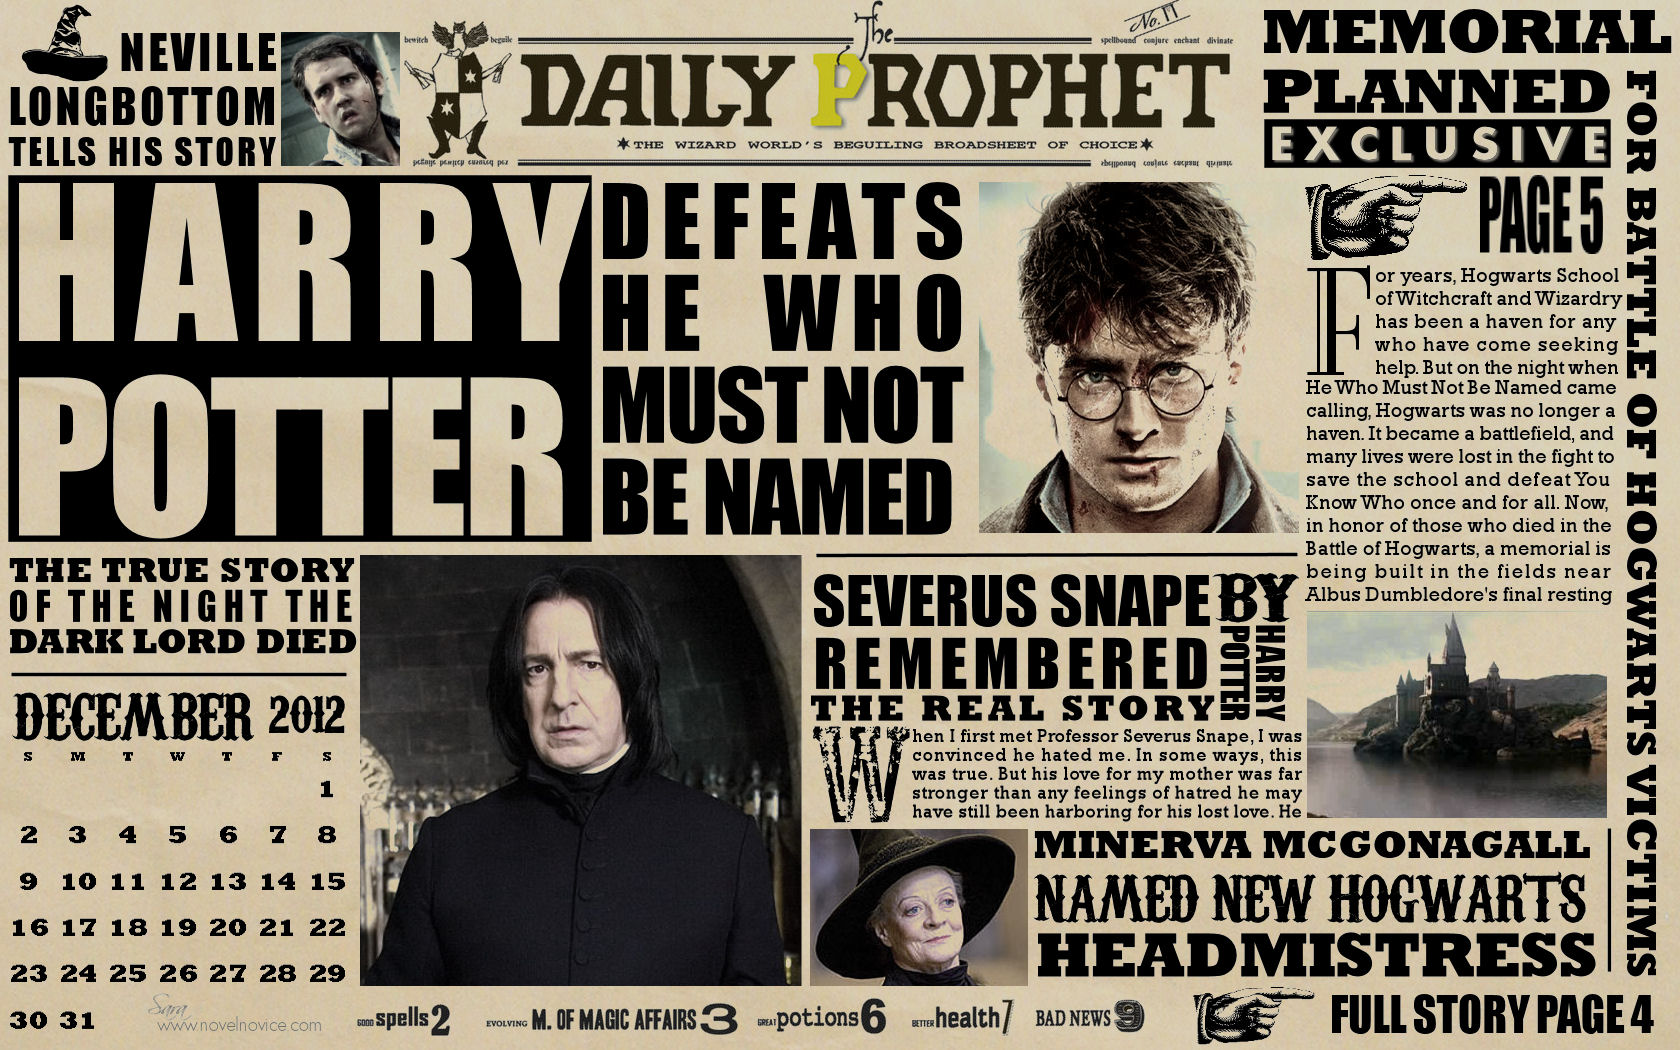 persuasive essay on harry potter The world of harry potter won't stop growing but as the franchise struggles to evolve with the times and live up to the tenets of the original series, the devotion of its legendary fandom is.